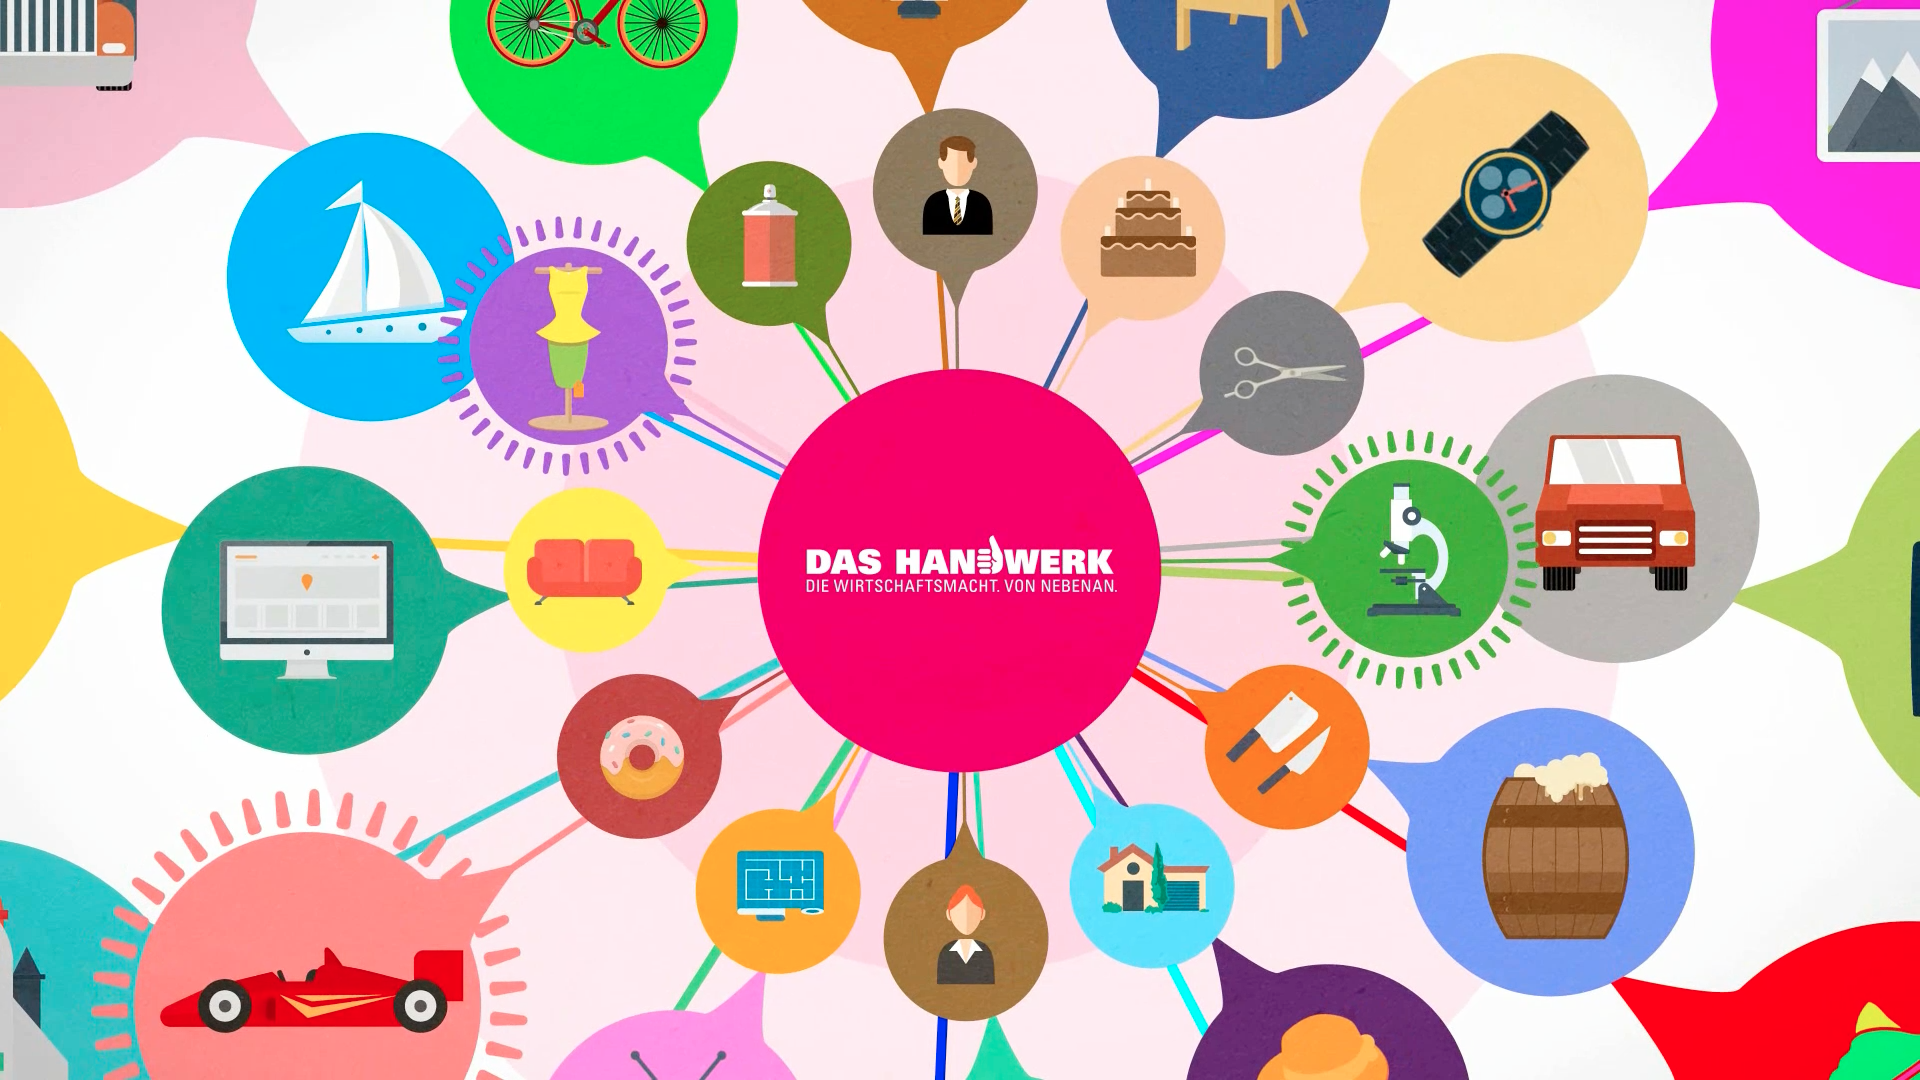 Dribbble A Handmade Explain Movie For The Official German Craft